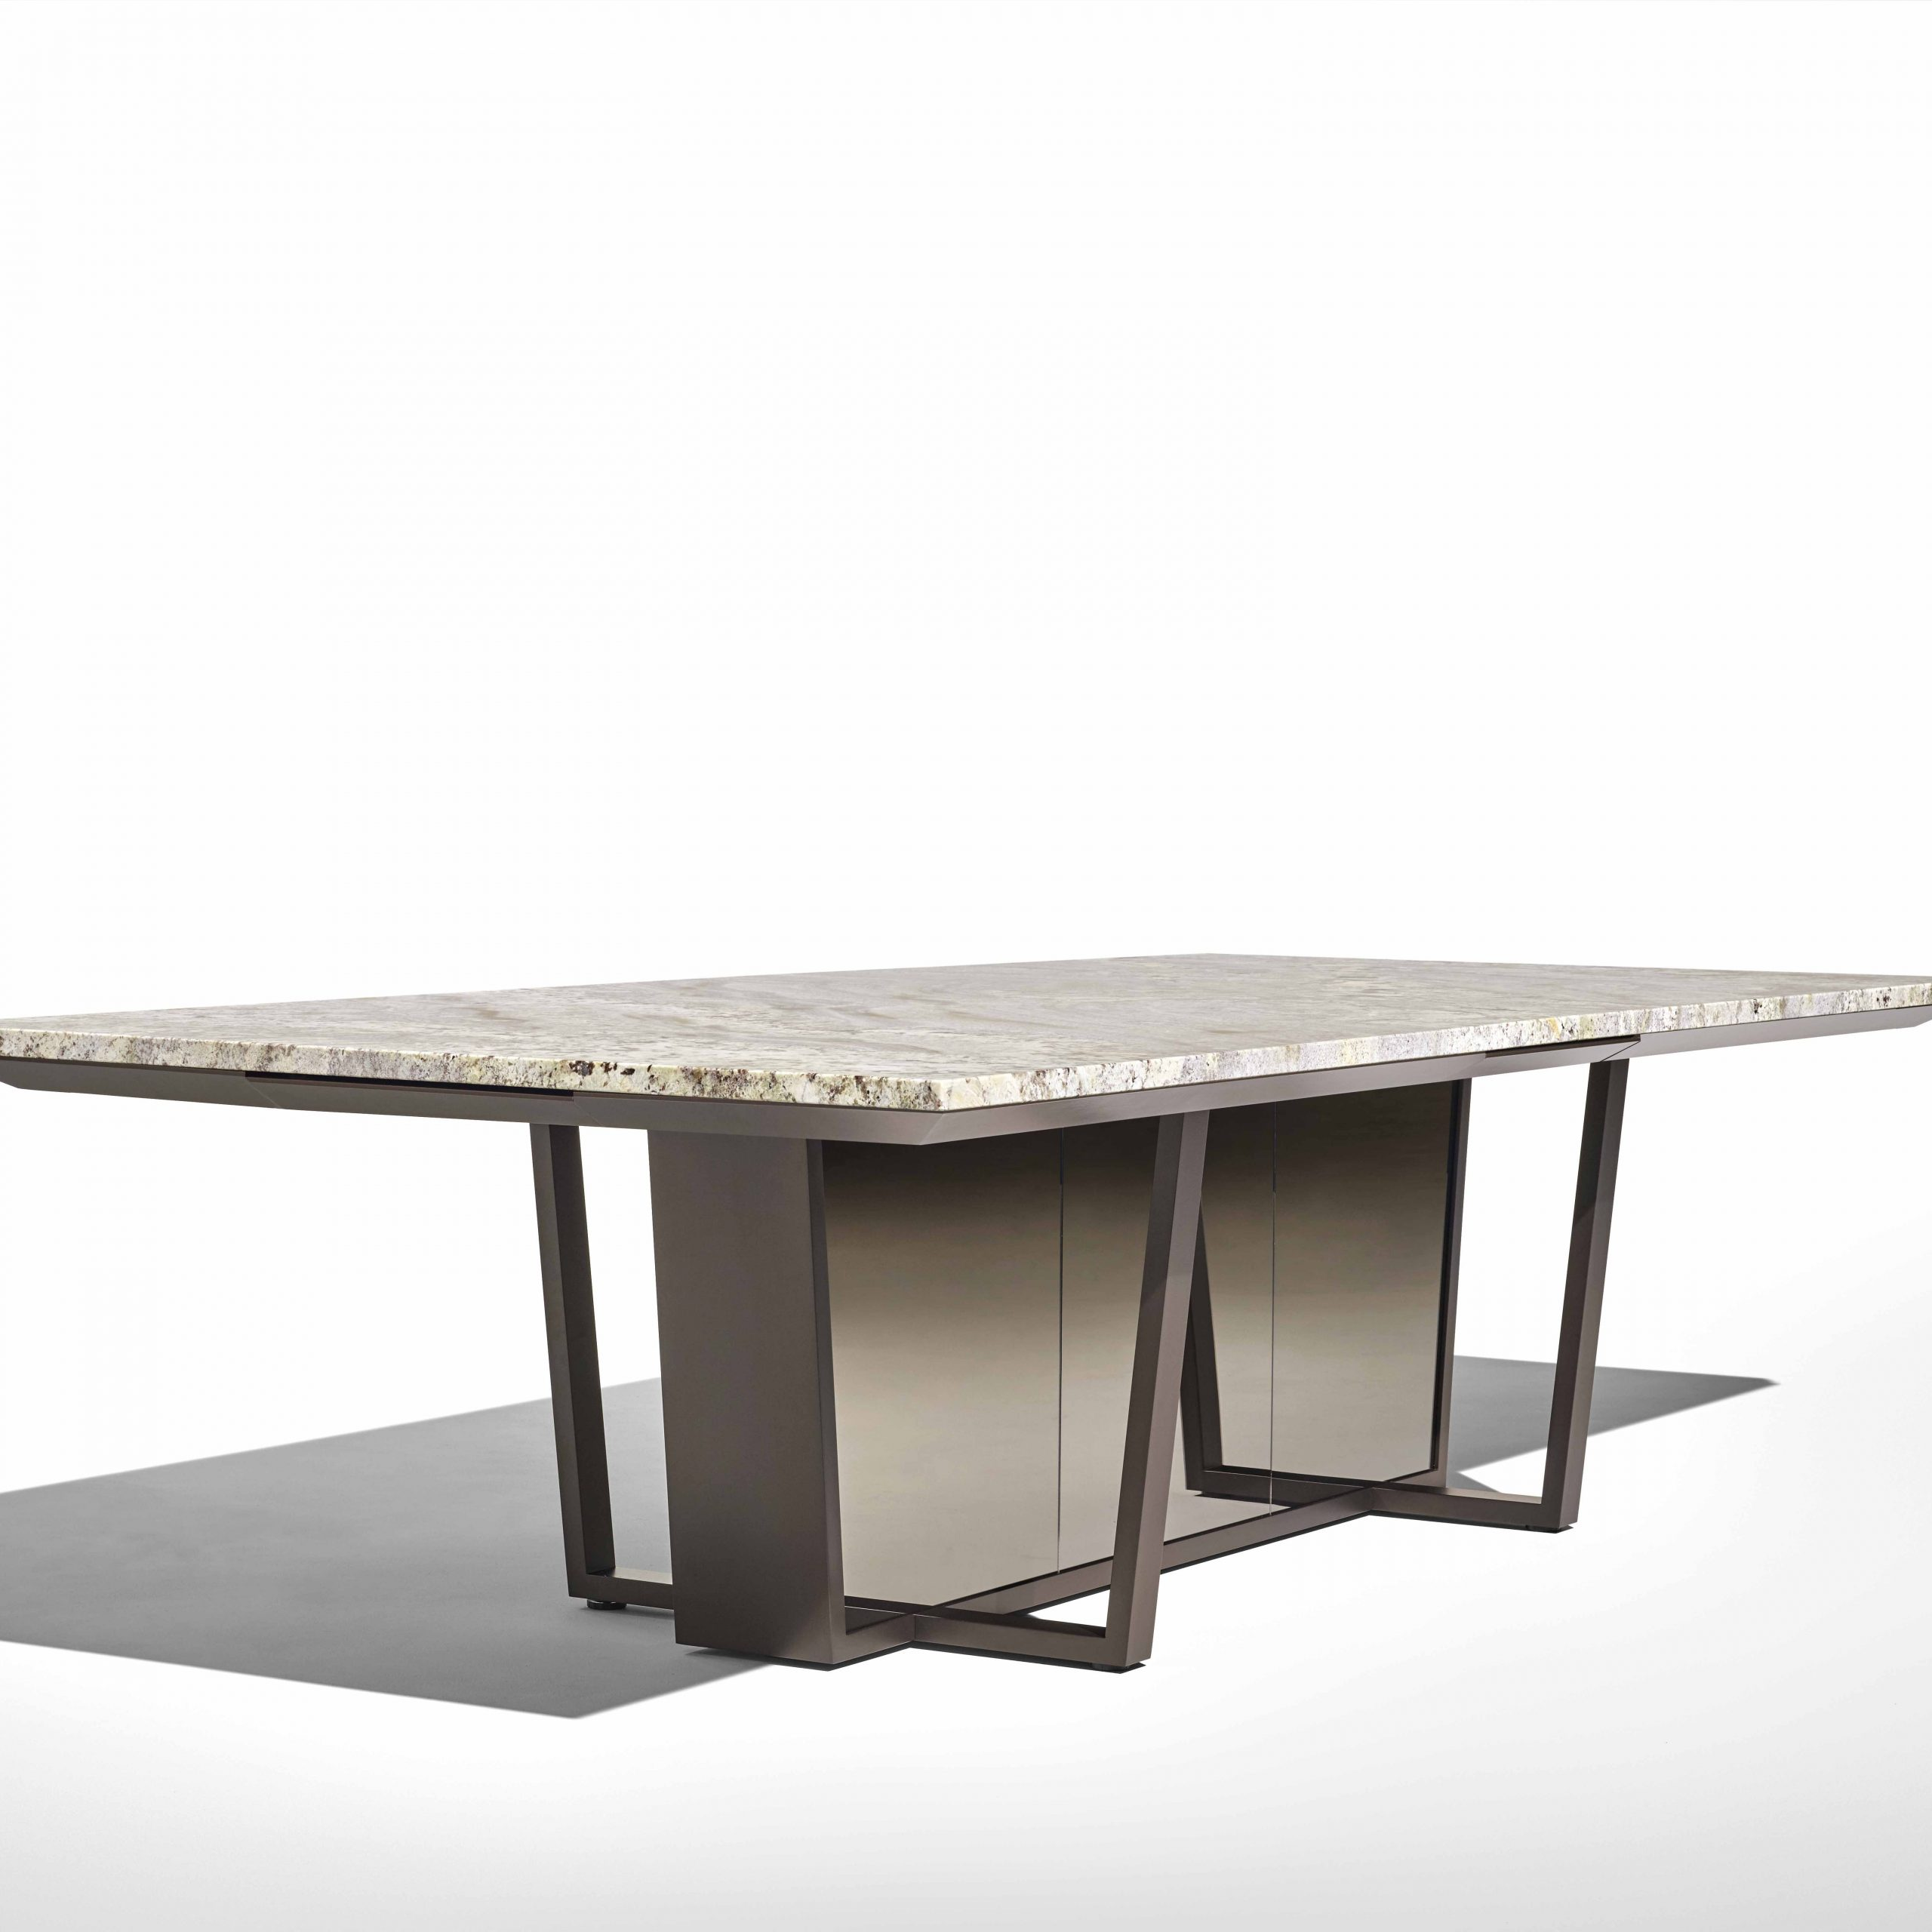 Most Popular Crilly 23.6'' Dining Tables In Crossbeam Designedlauren Rottet (View 9 of 20)